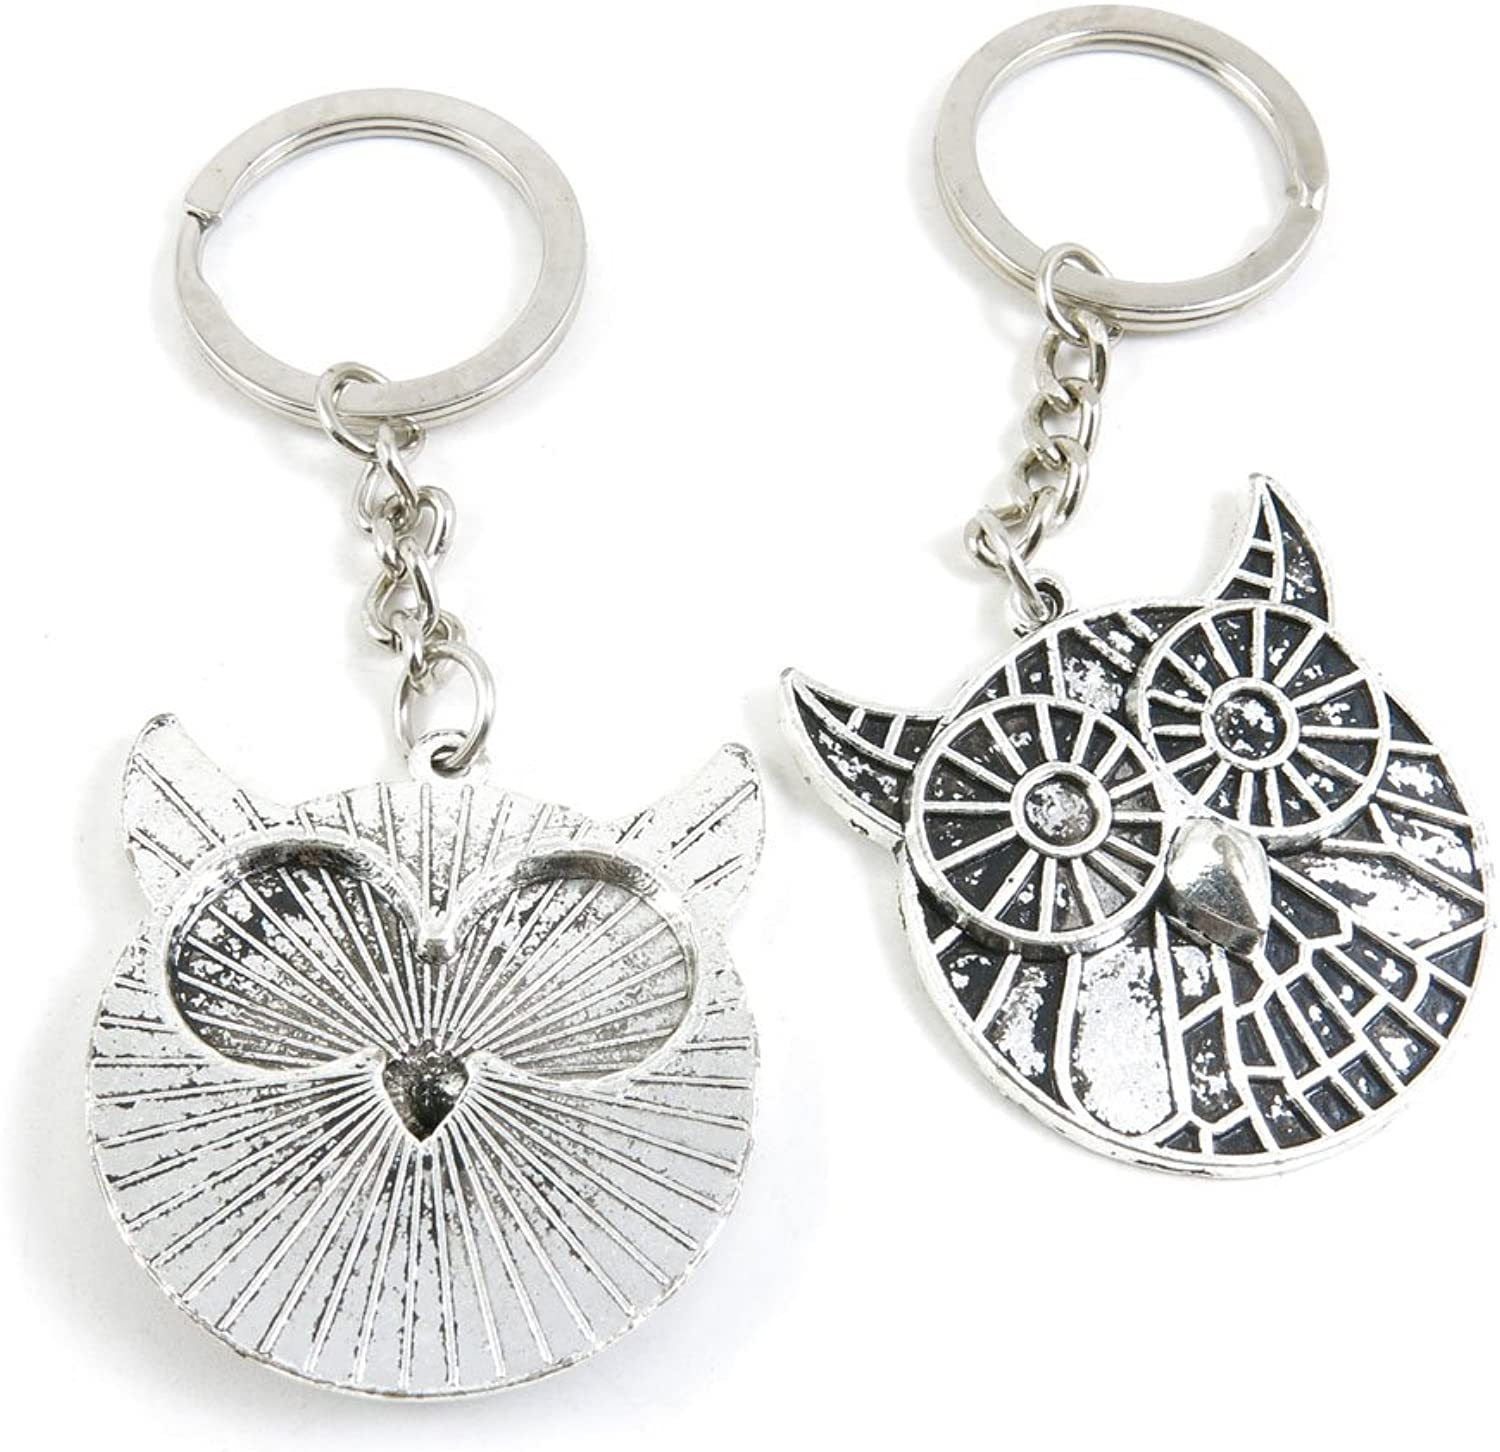 50 Pieces Keychain Keyring Door Car Key Chain Ring Tag Charms Bulk Supply Jewelry Making Clasp Findings X3ZL4K Cute Round Owl